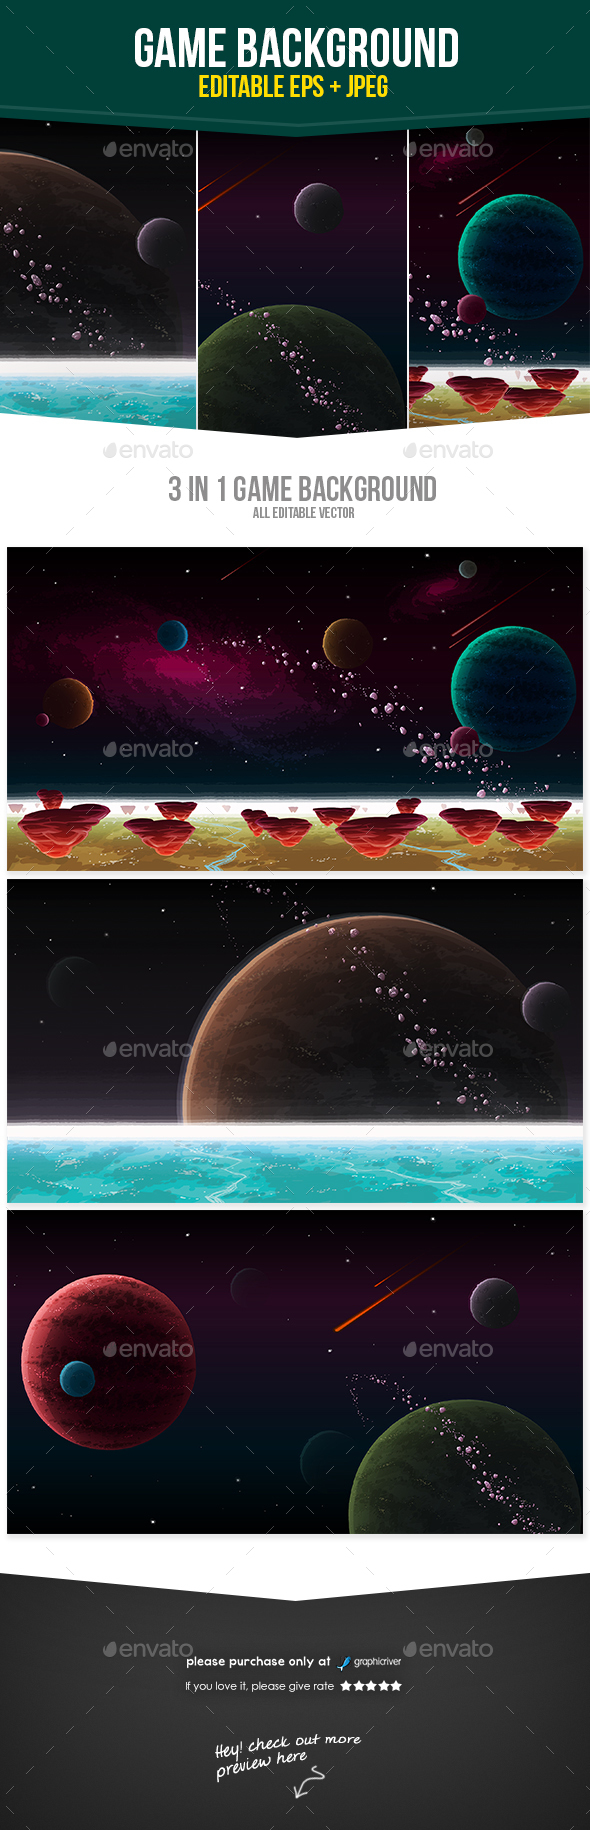 Space Galaxy Game Background - Backgrounds Game Assets